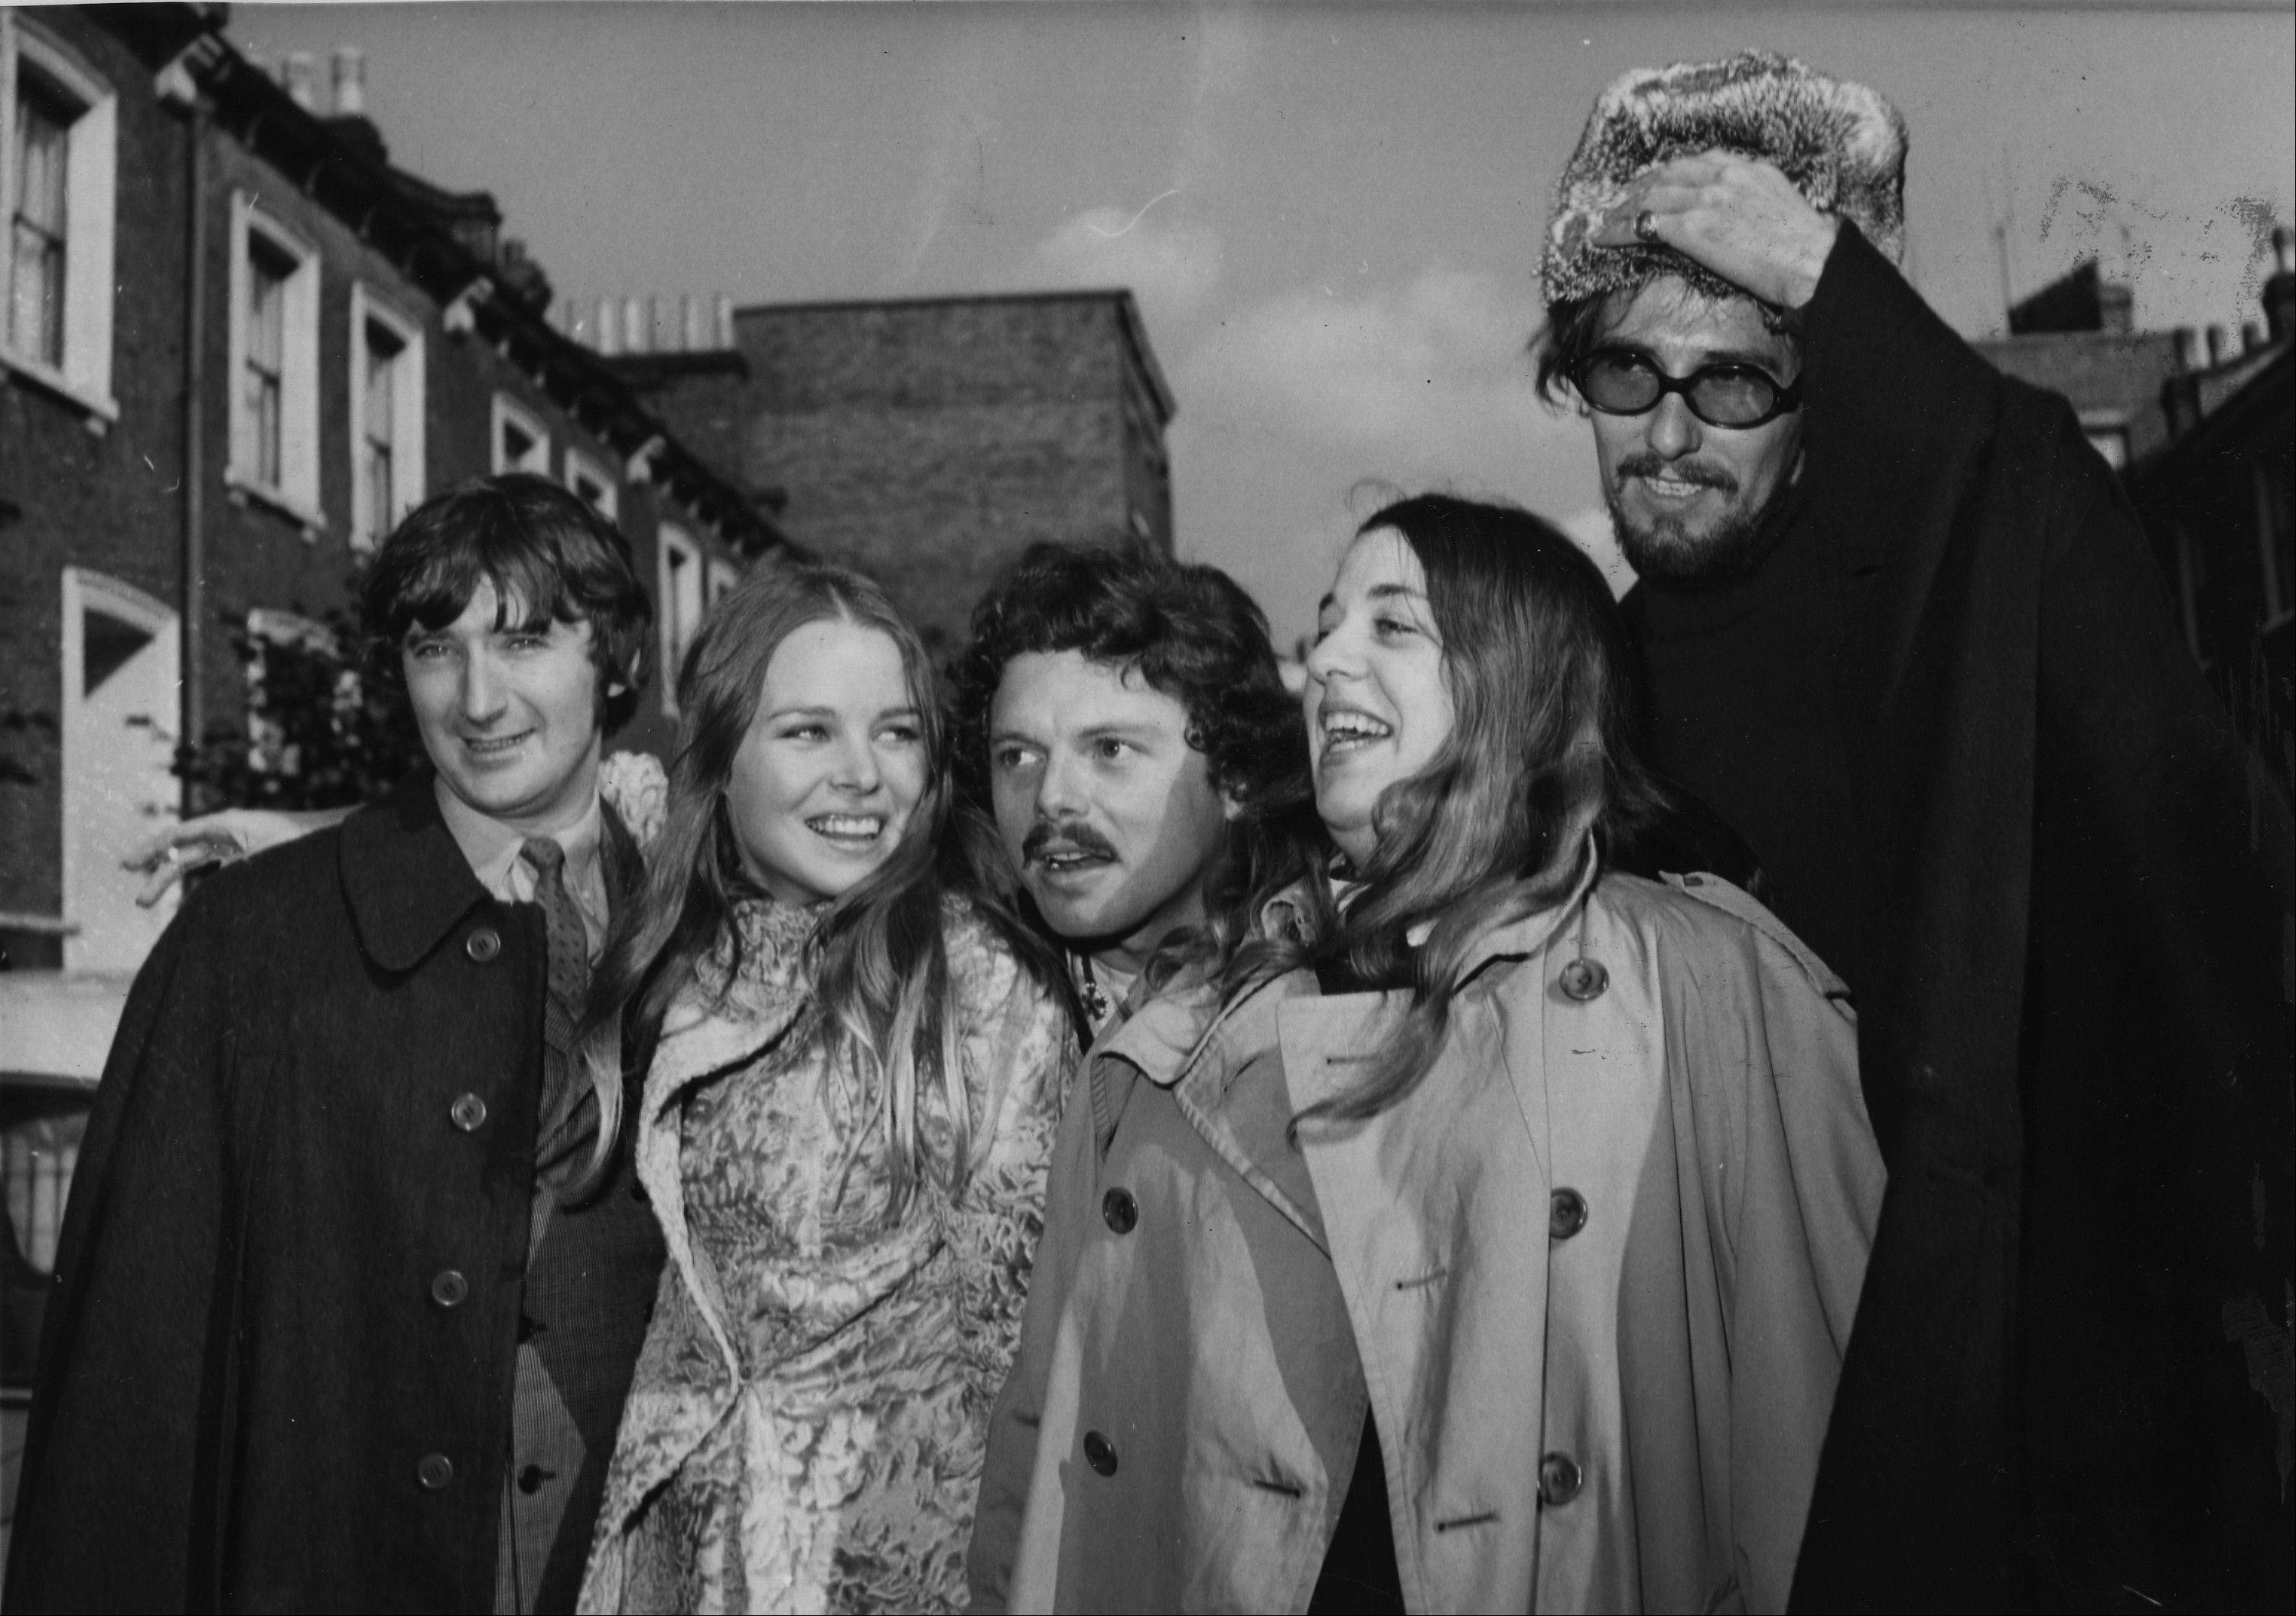 Scott McKenzie, center, poses with the Mamas and the Papas in London, from left, Denny Doherty, Michele Gillian, Scott McKenzie, Cass Elliott and John Phillips.